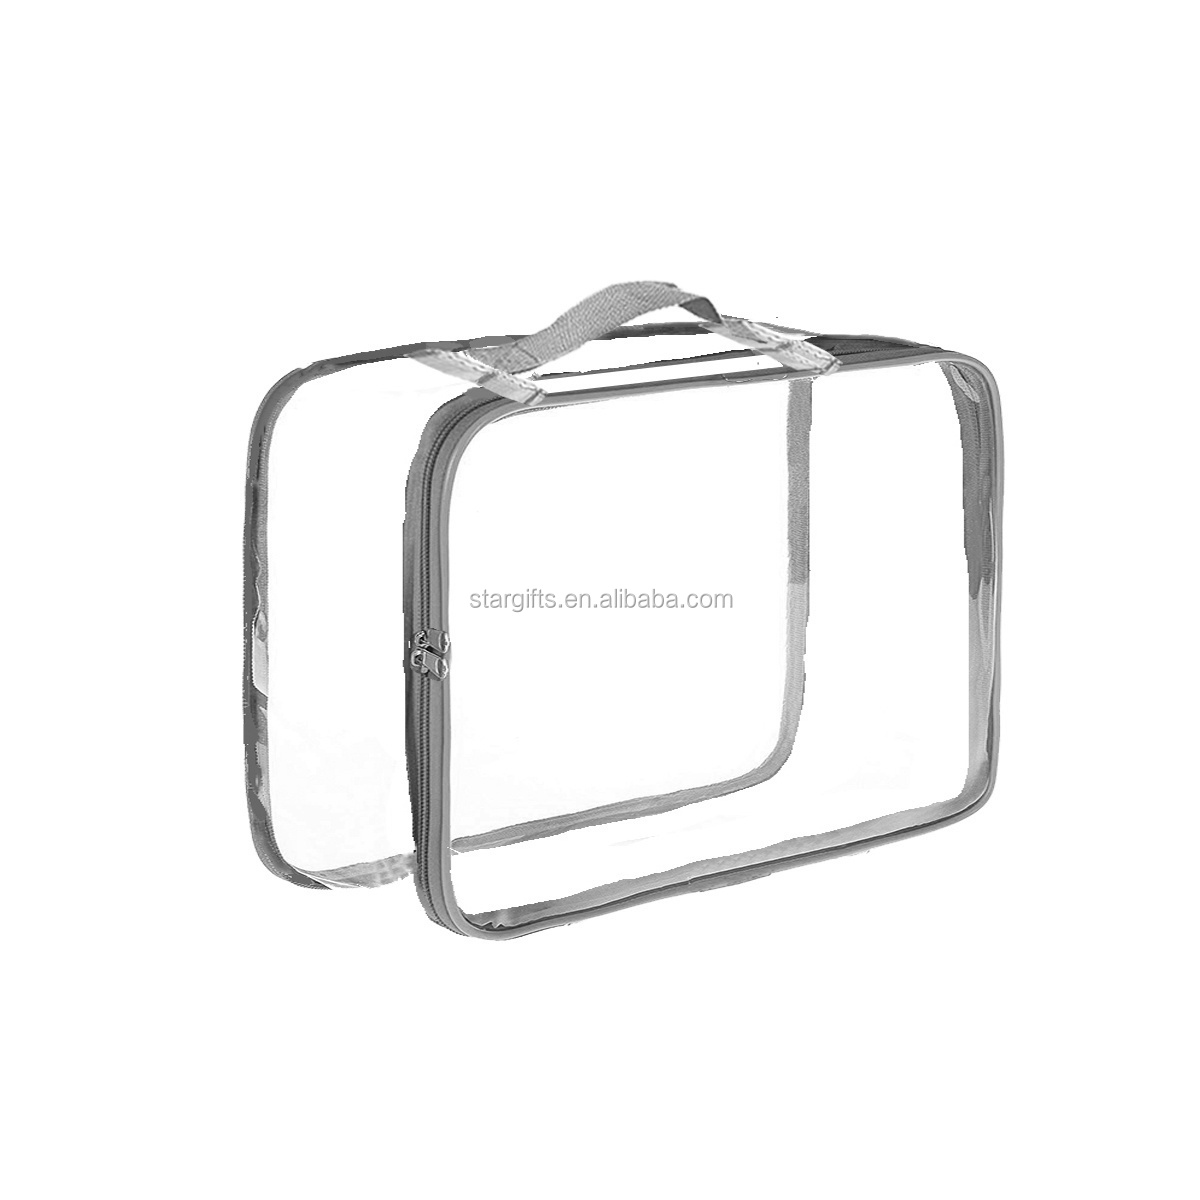 2019 Fashion Clear PVC Luggage Organizer Water-proof Custom Vinyl Transparent Packing Cubes